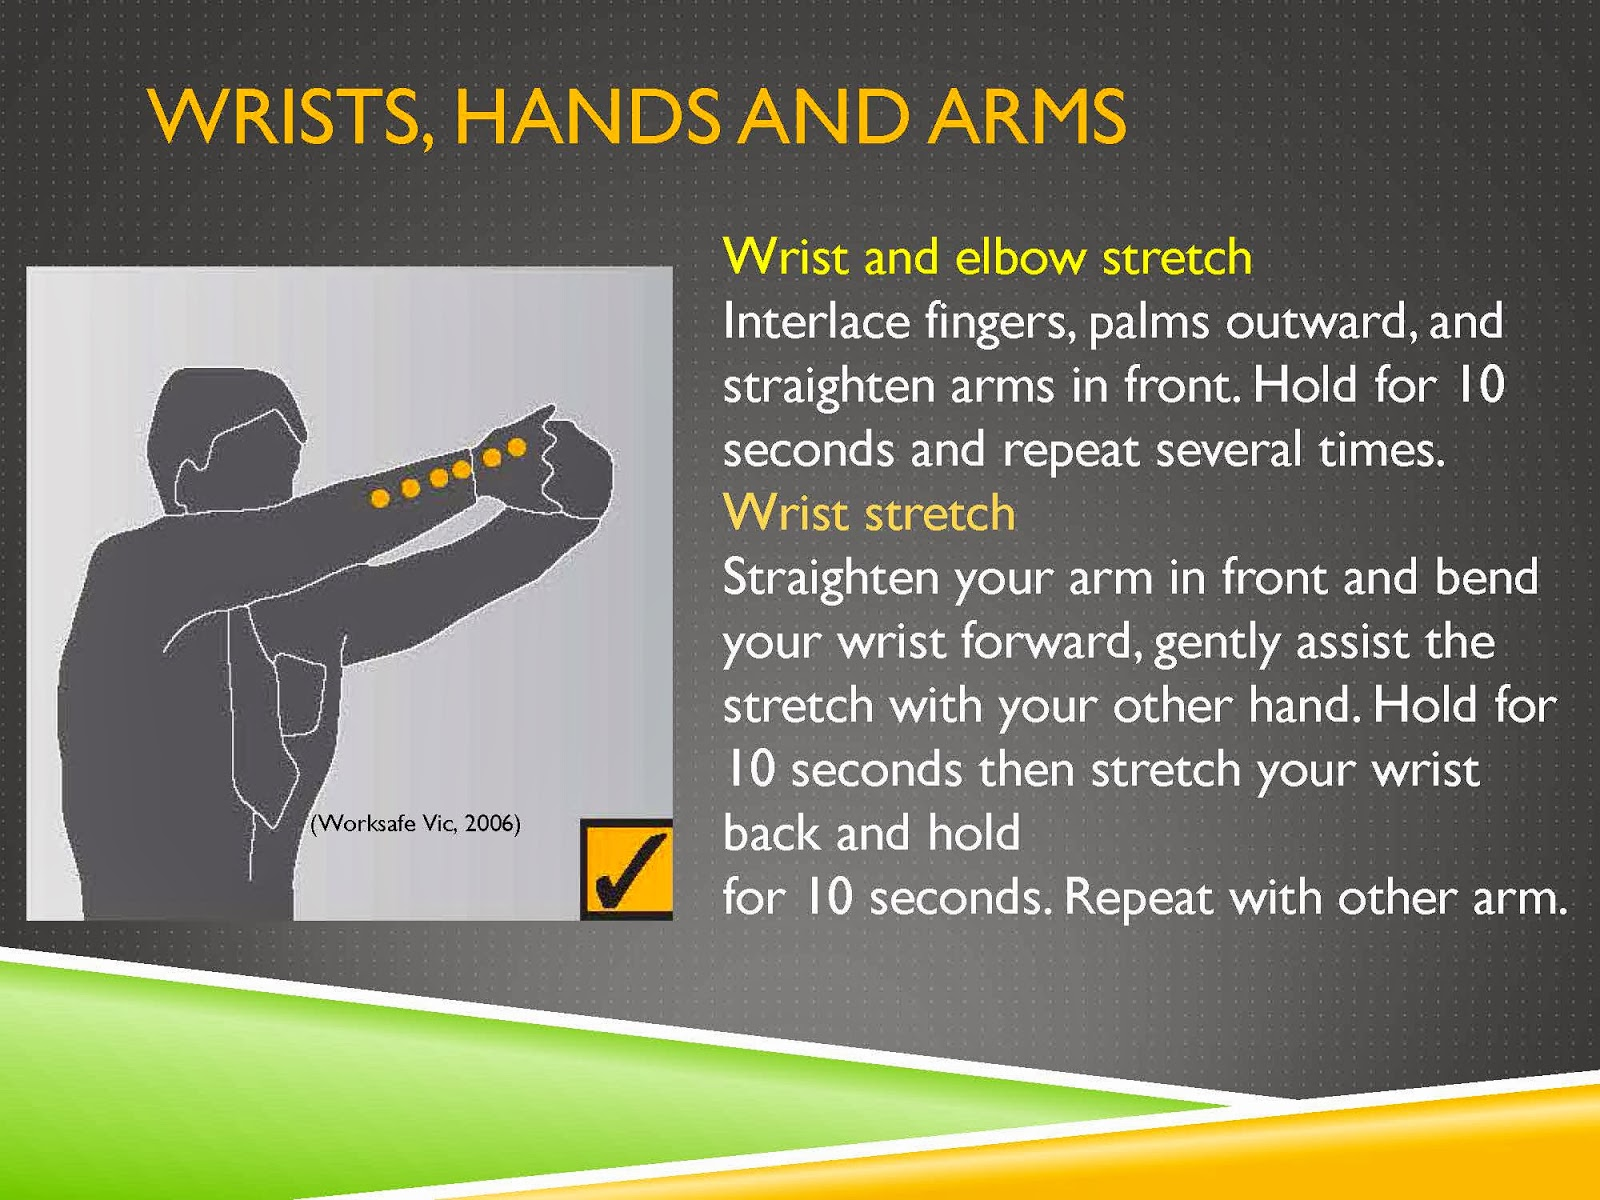 WRISTS, HANDS AND ARMS STRETCH